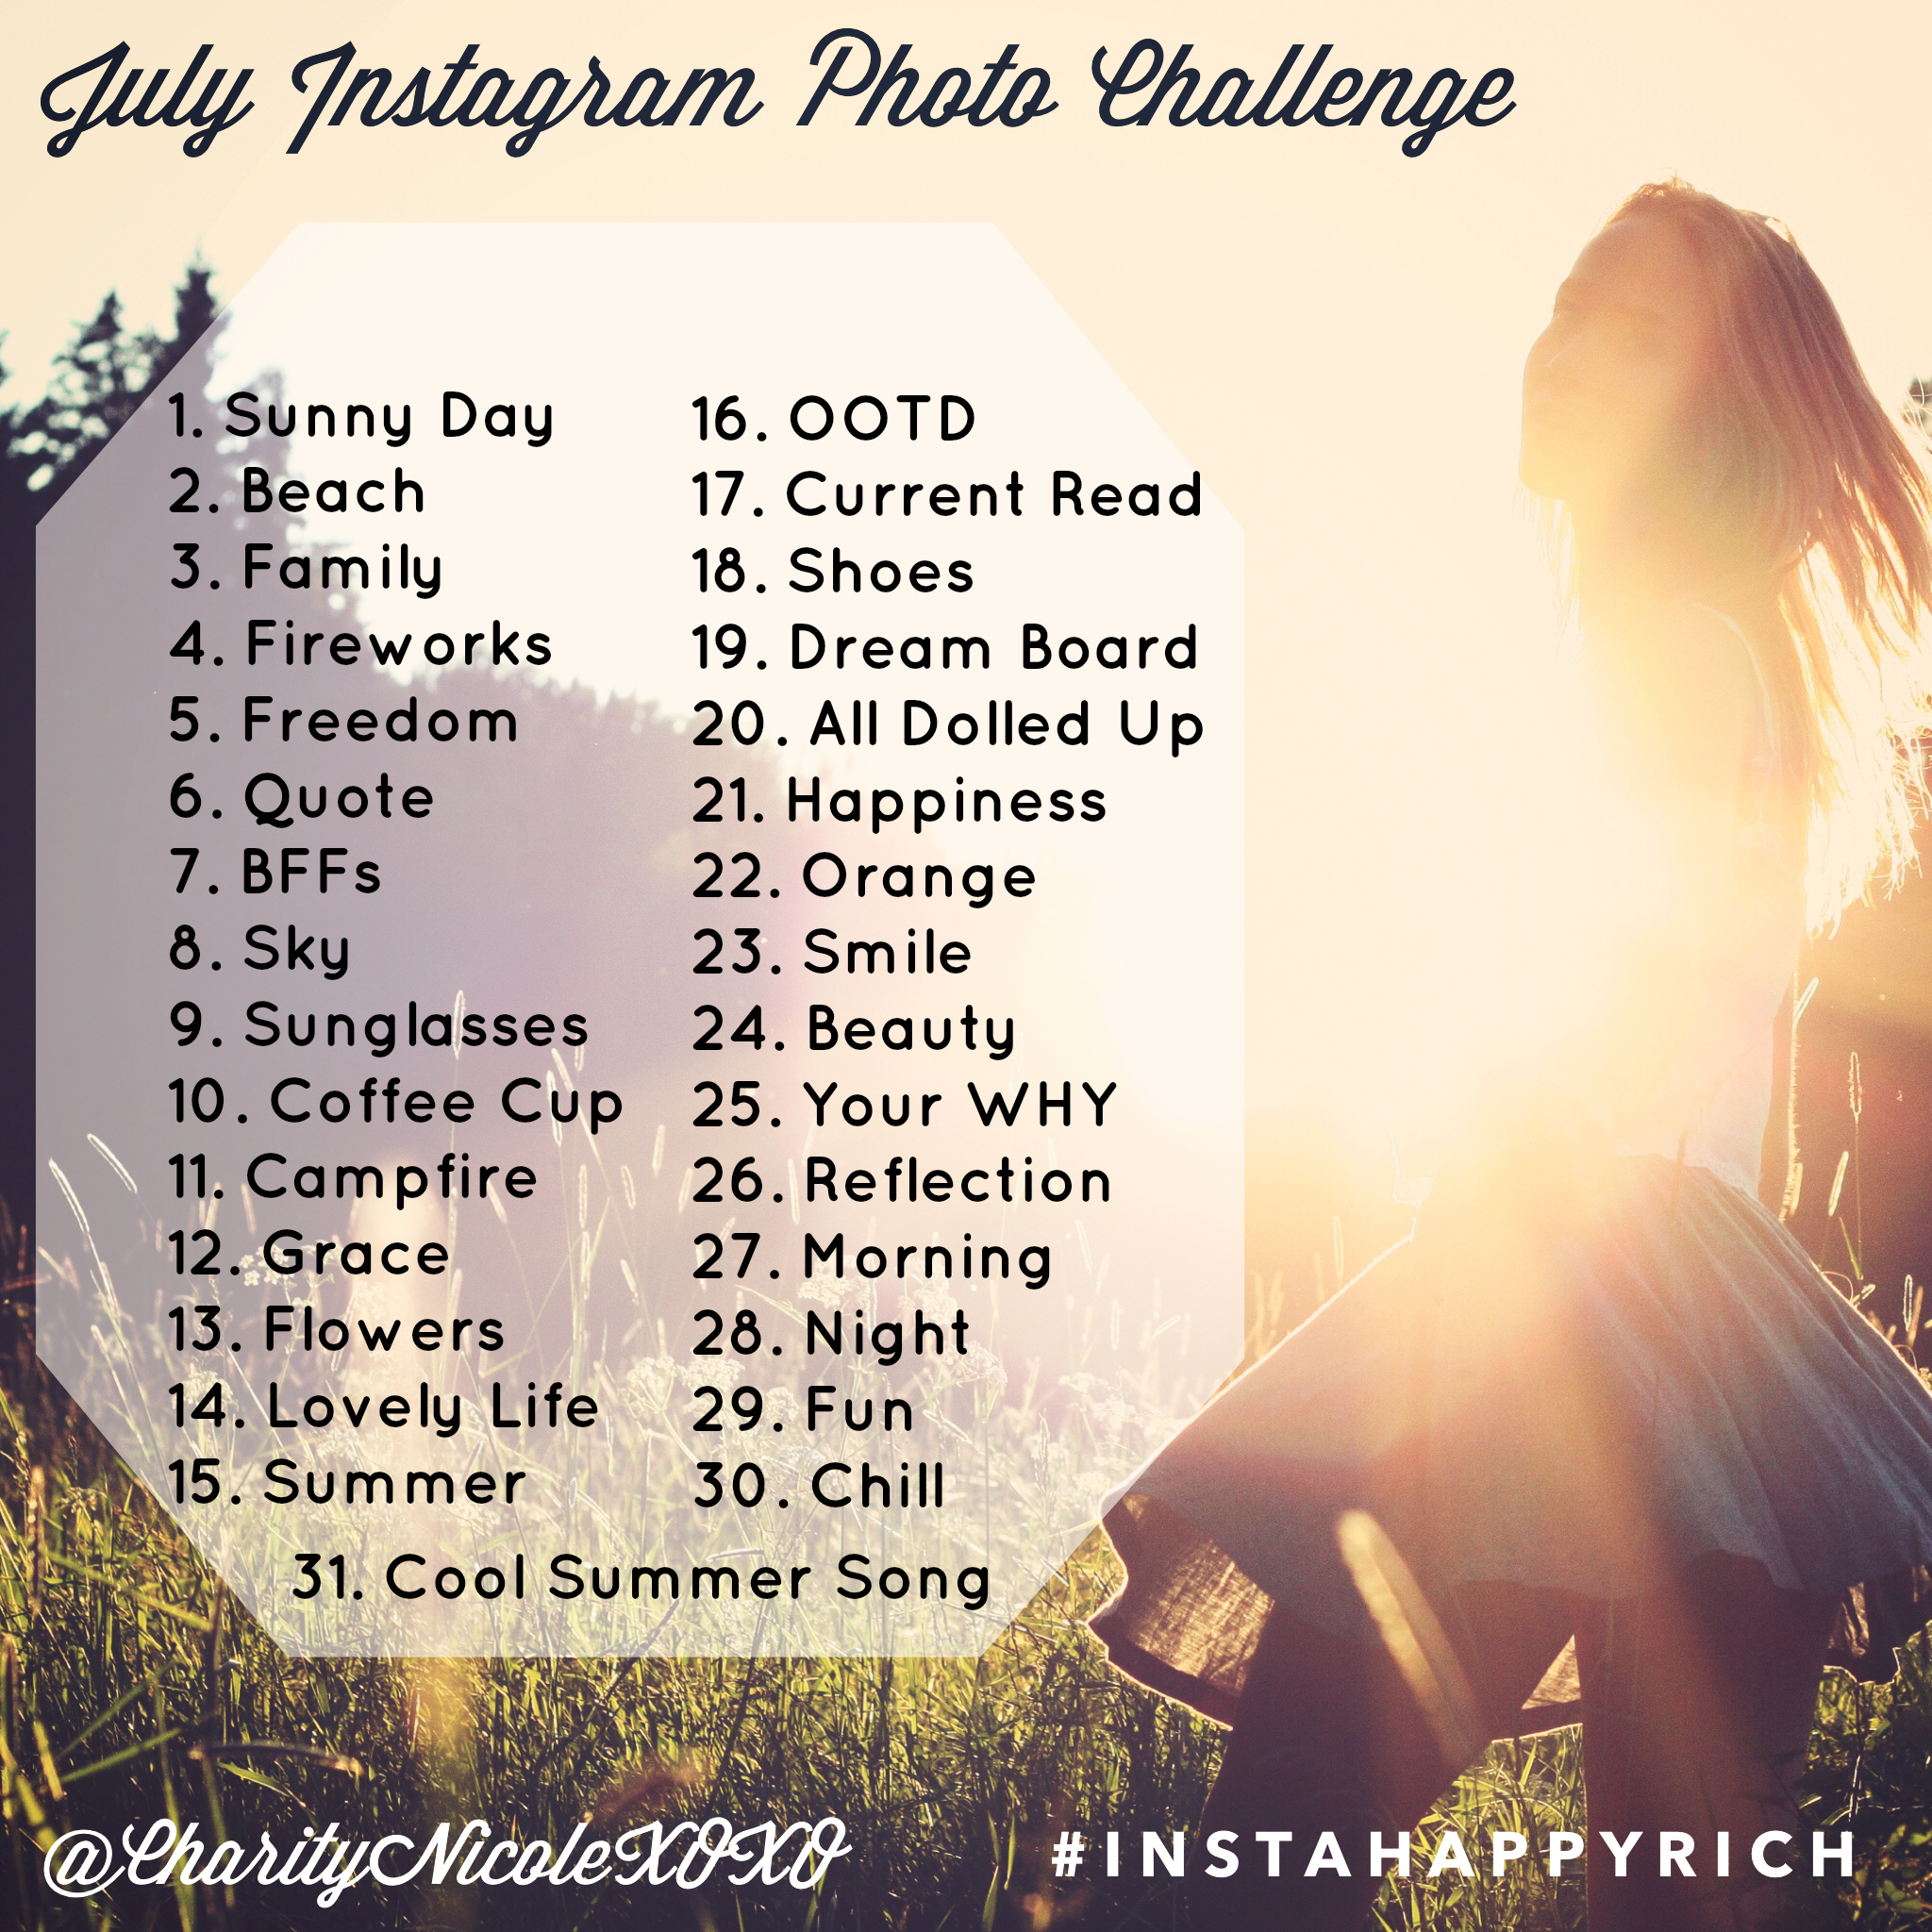 10 Tactics We Used To Get 10k Instagram Followers in 2 December 2018 instagram photo challenge